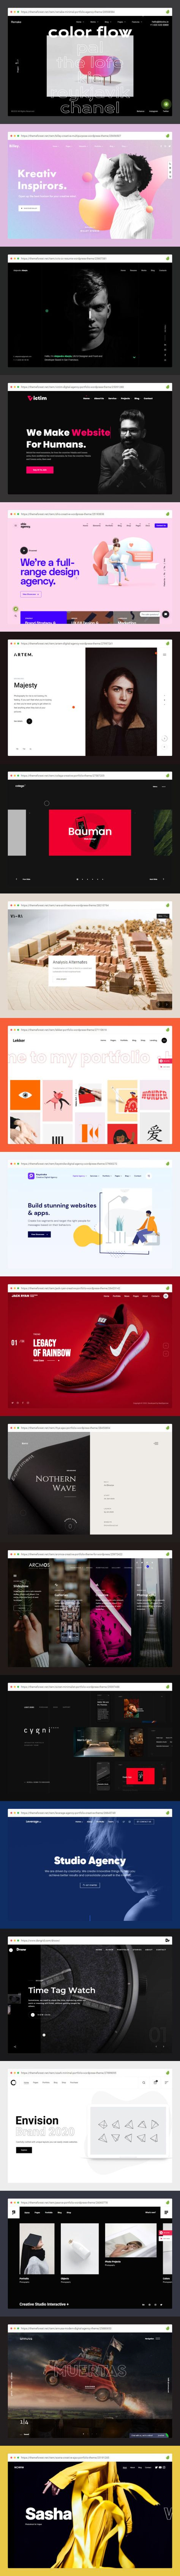 20 Top Designed WordPress Portfolios 2021